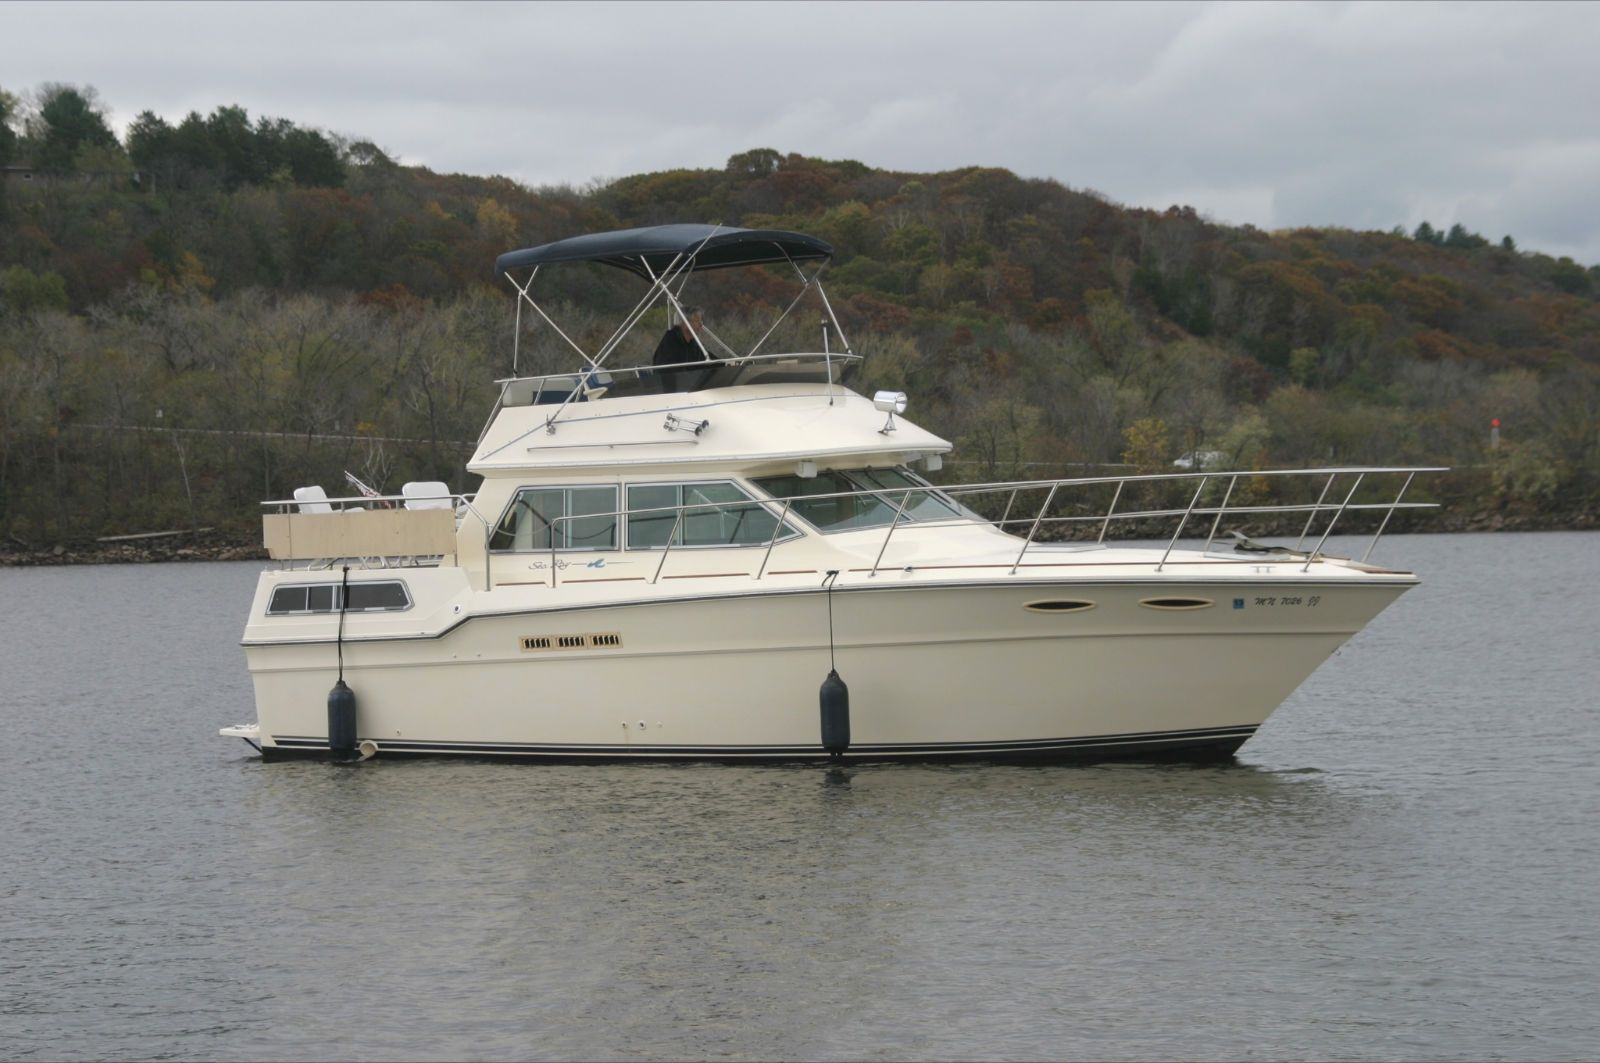 Stillwater (MN) United States  city photo : 1987 Sea Ray 360 Aft Cabin Power Boat For Sale www.yachtworld.com